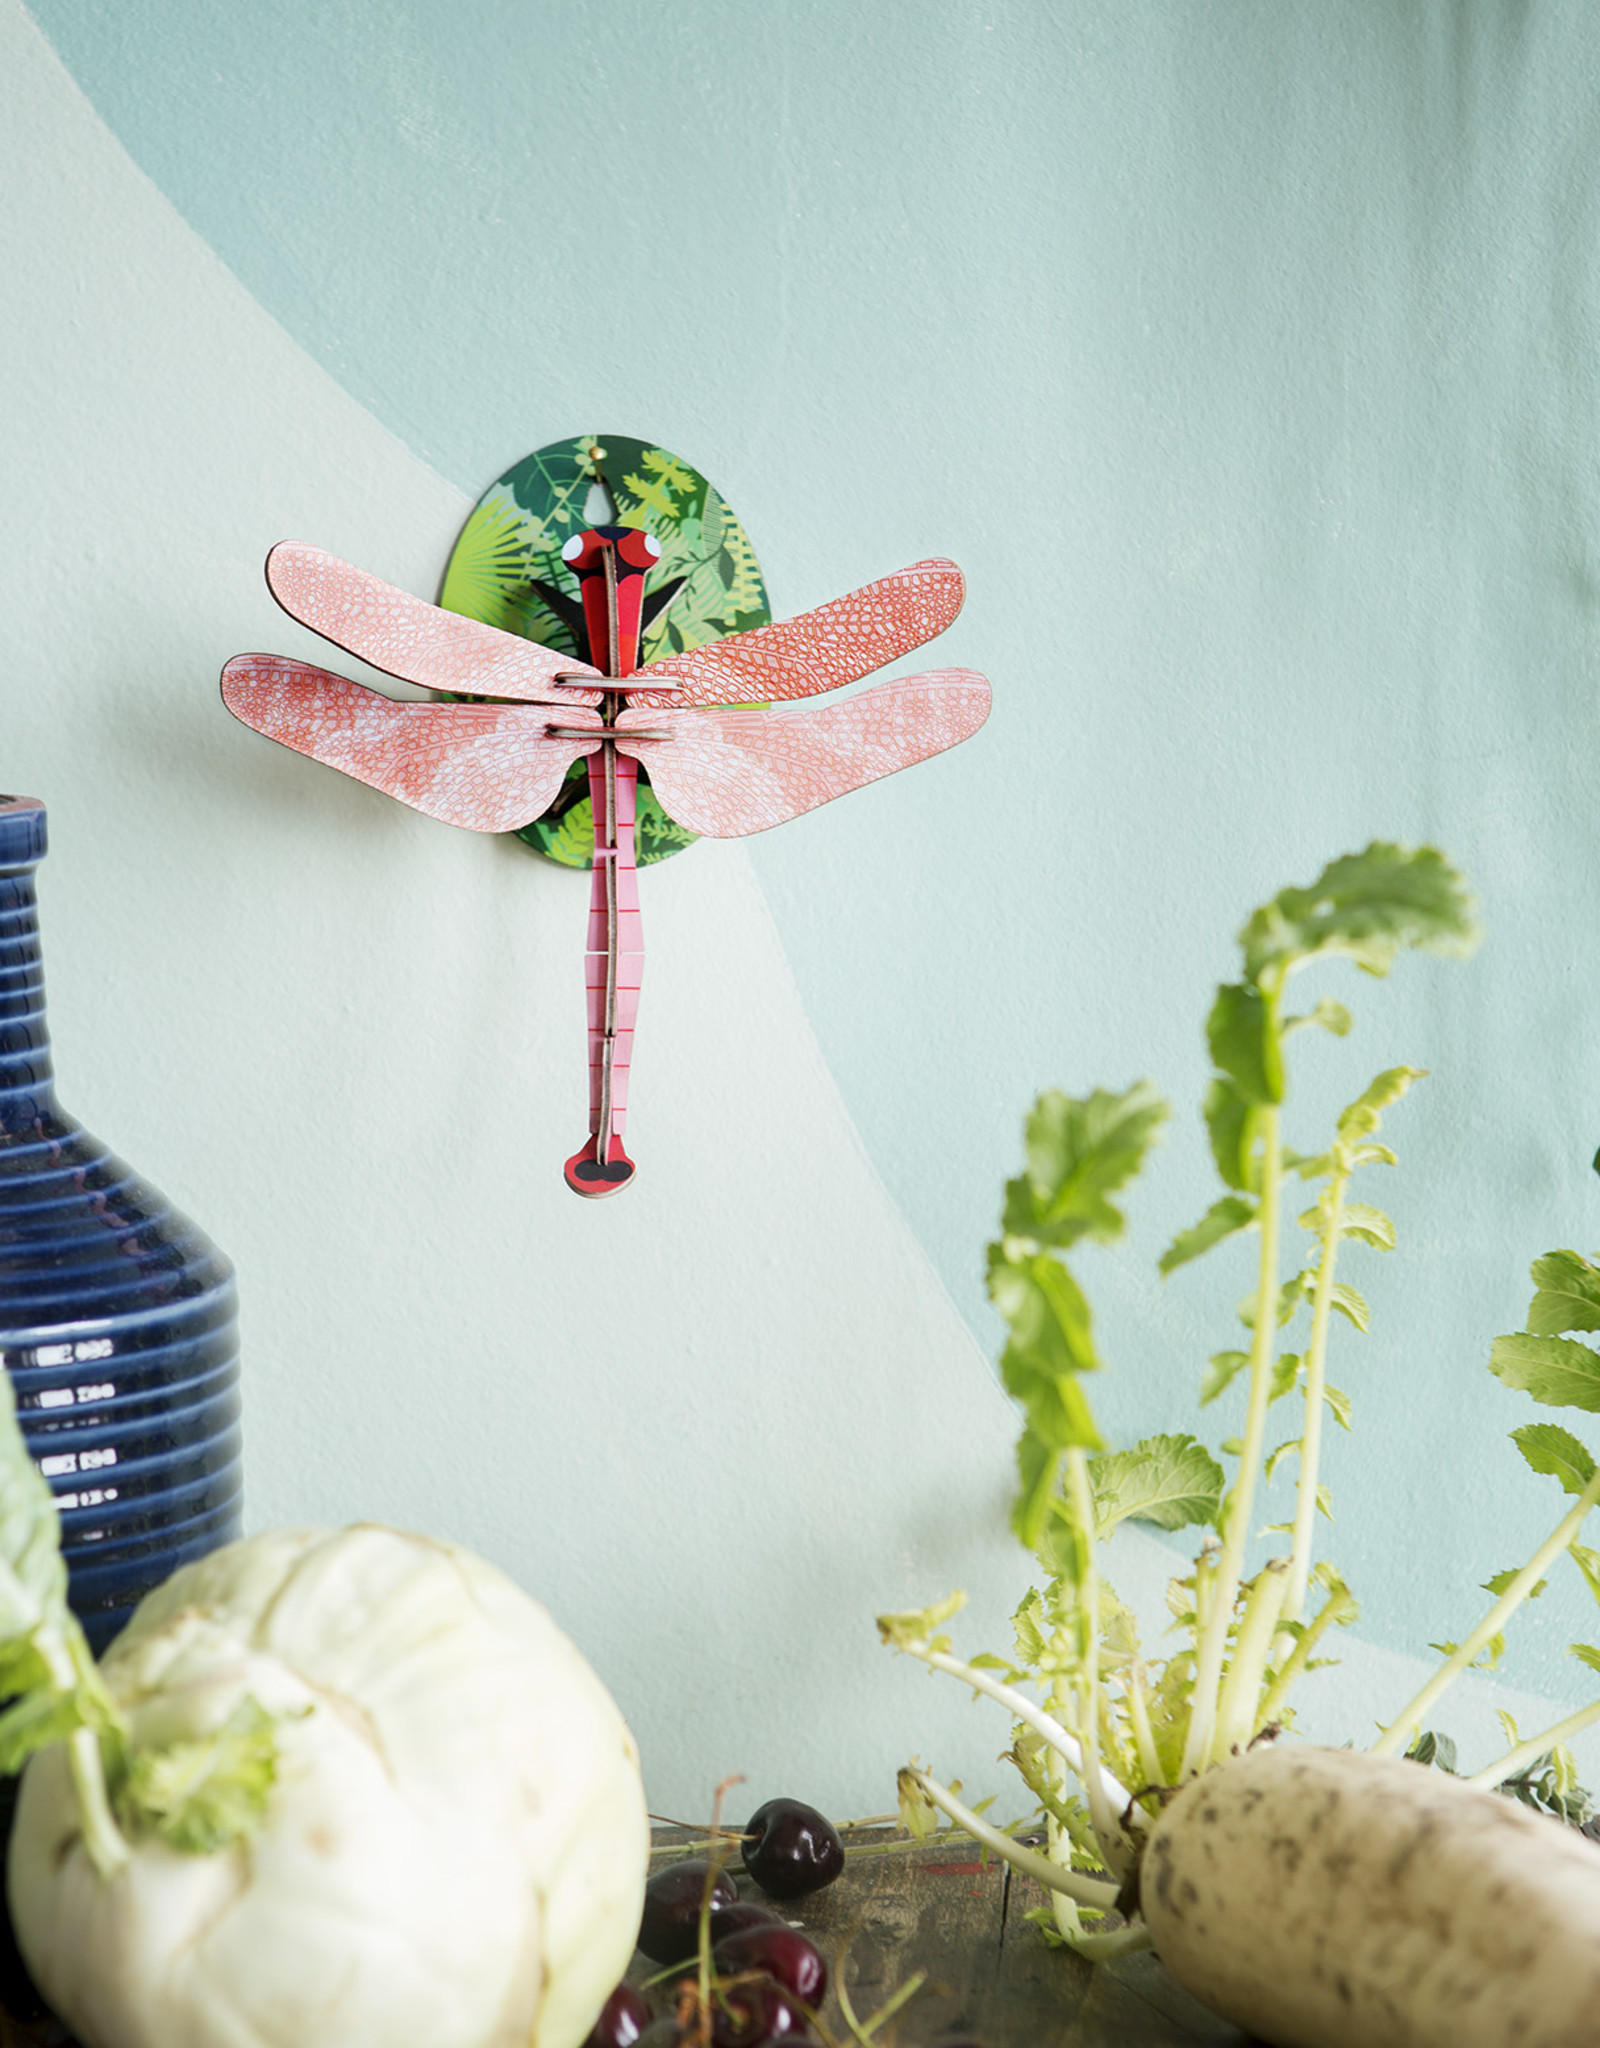 Studioroof Studio Roof Wall Decor Nature Pink Dragonfly small